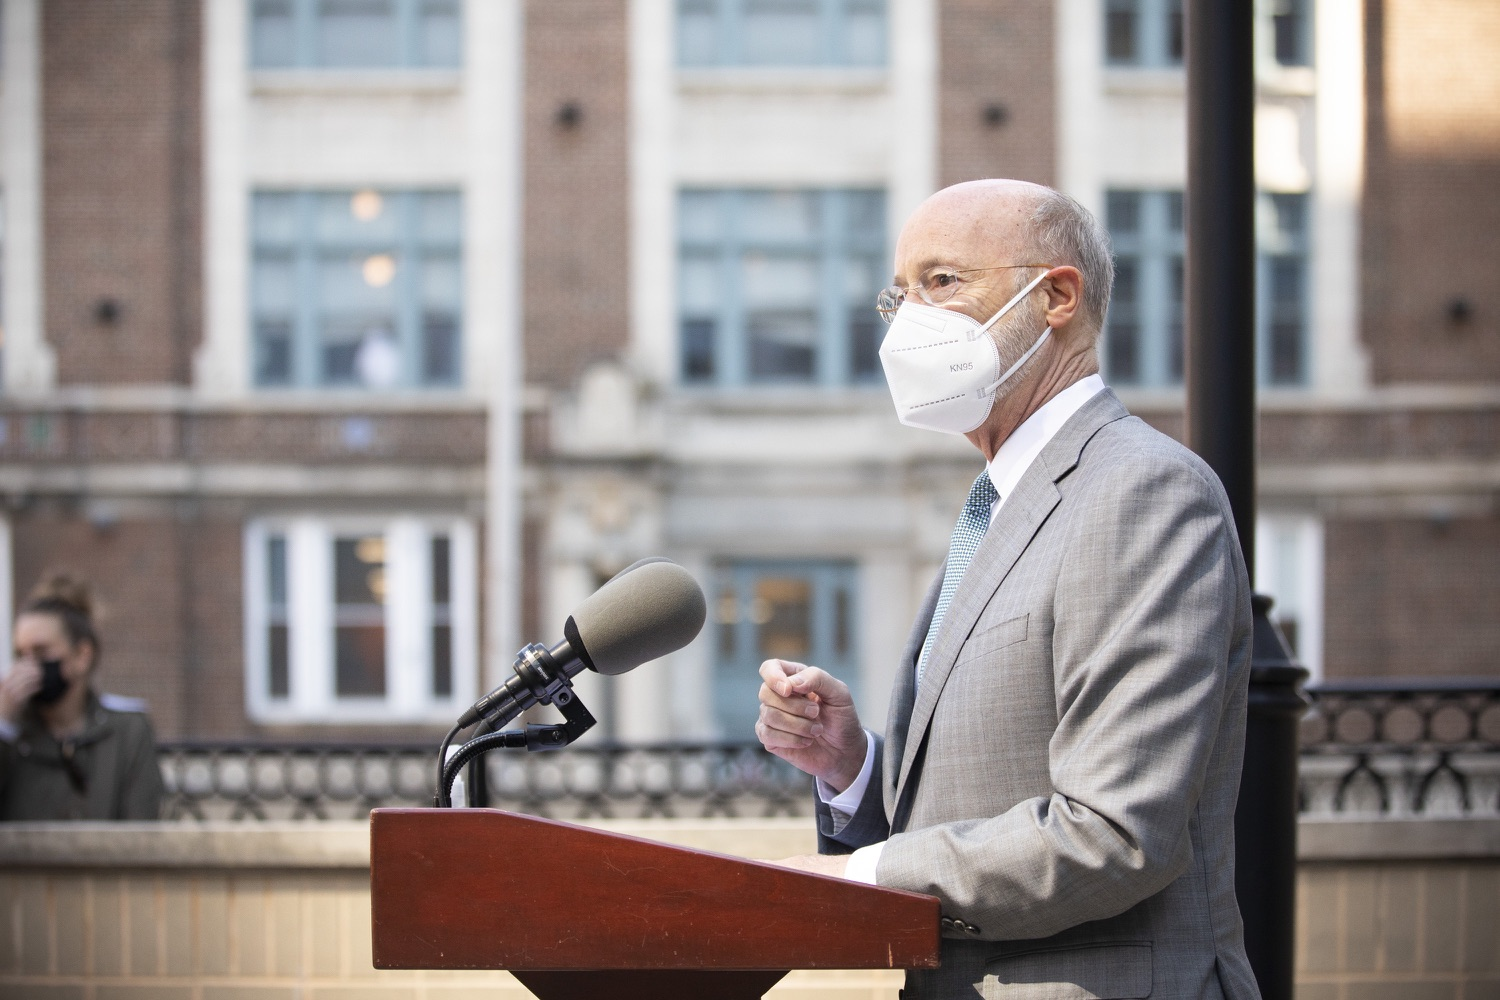 """<a href=""""https://filesource.wostreaming.net/commonwealthofpa/photo/18688_gov_vaccines_dz_008.jpg"""" target=""""_blank"""">⇣Download Photo<br></a>Pennsylvania Governor Tom Wolf speaking with the press.  As Pennsylvania continues its accelerated COVID-19 vaccination plan, Pennsylvanians who are not able to leave their homes must be reached, and various state agencies and community groups are helping. Governor Tom Wolf visited Reading to talk about how the state and its partners are using various means to reach people not able to leave home to be vaccinated against COVID-19.  APRIL 26, 2021 - READING, PA"""